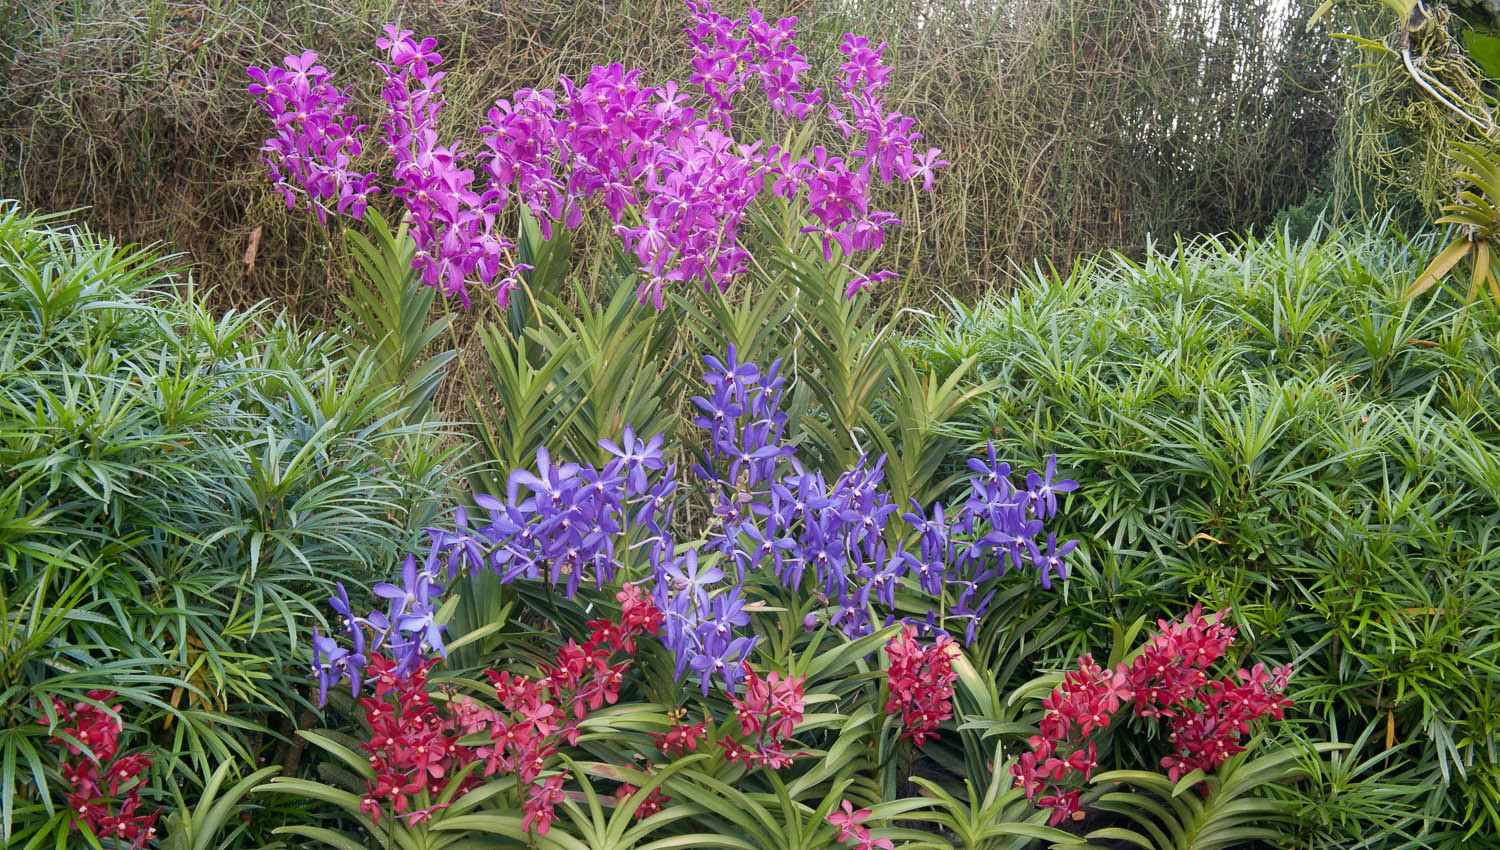 Colourful Vandas in the National Orchid Garden. Image: © David Astley